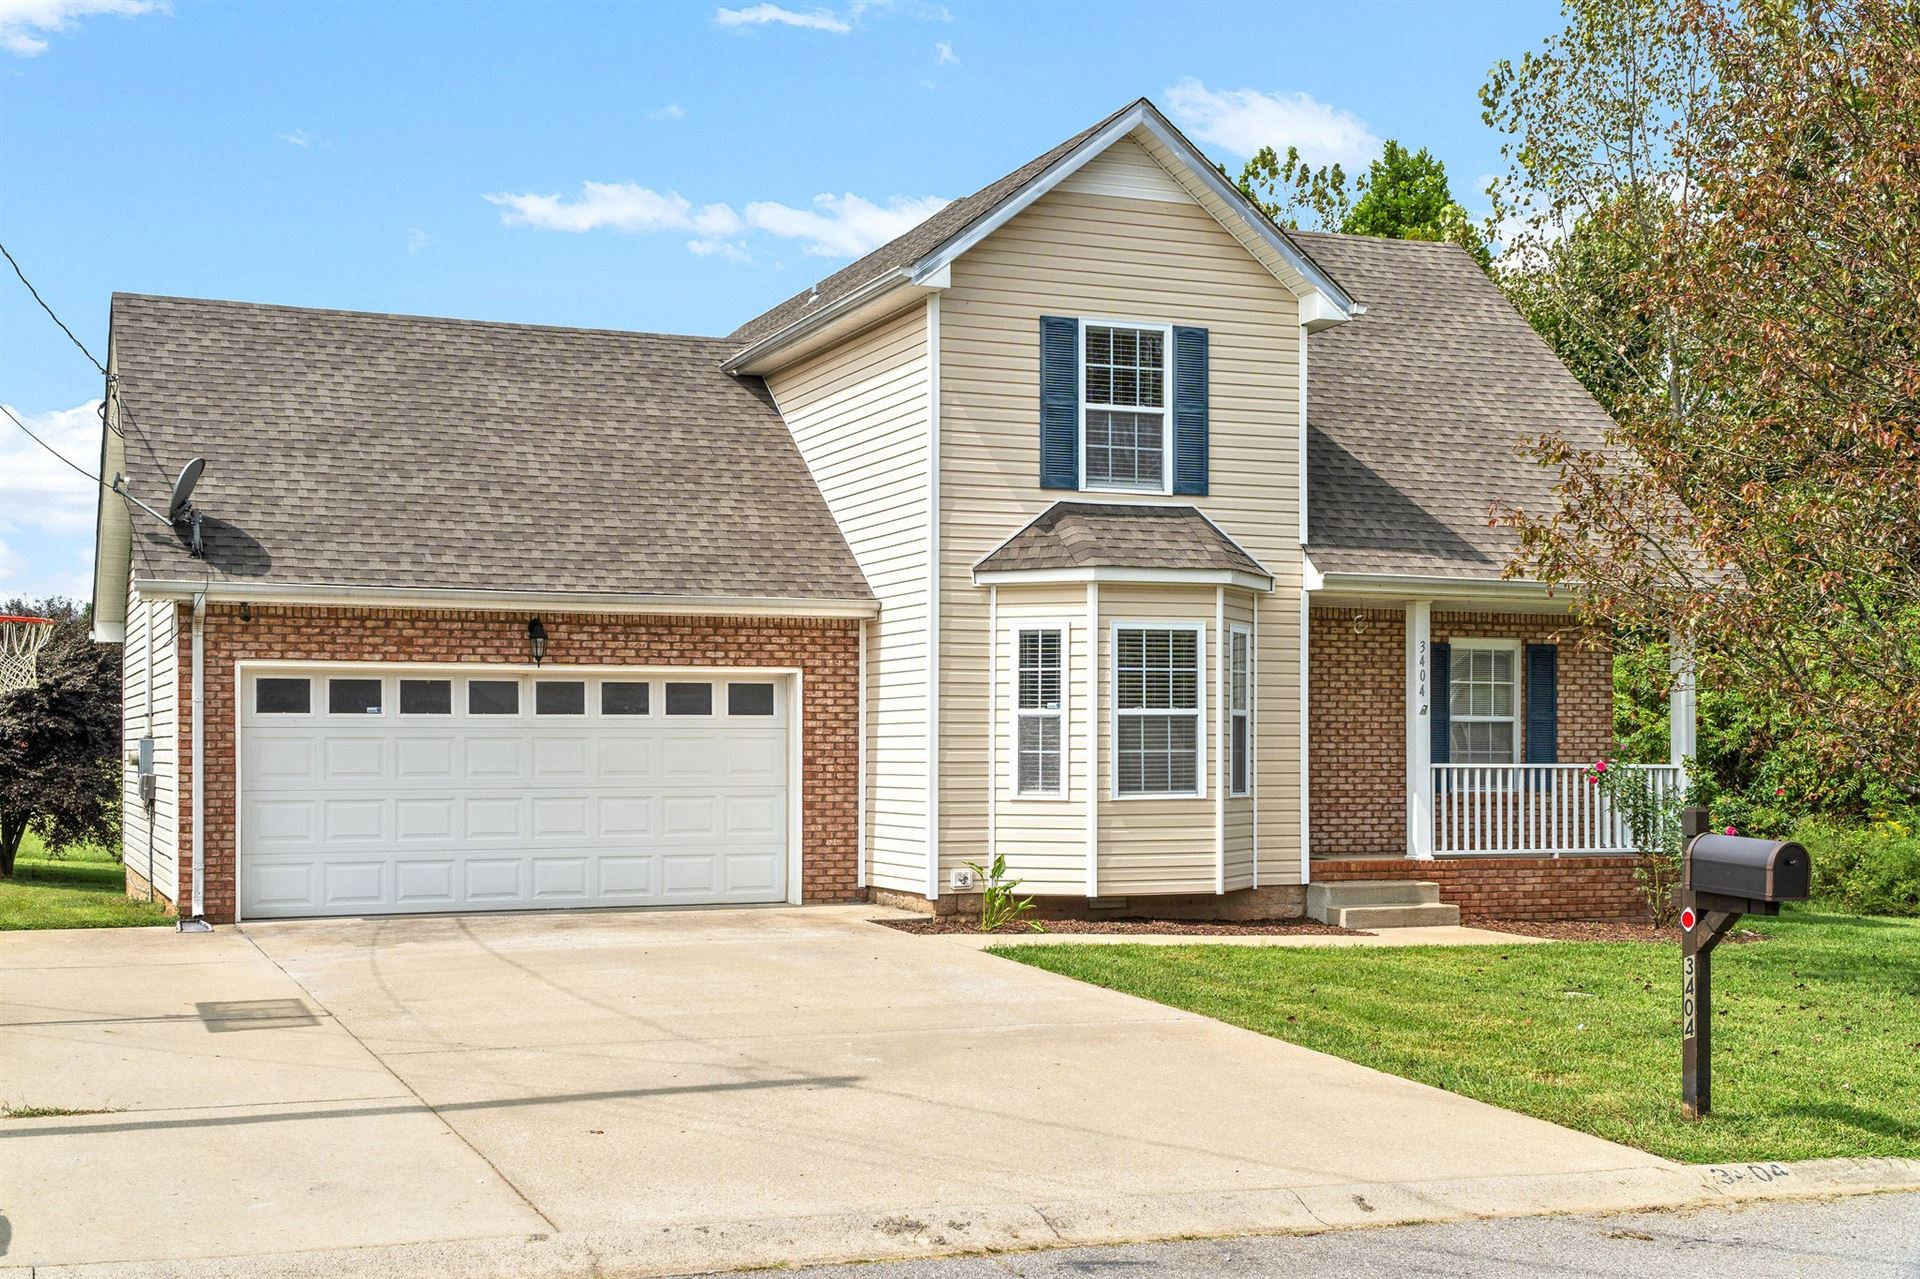 3404 Silty Ct, Clarksville, TN 37042 - MLS#: 2189865